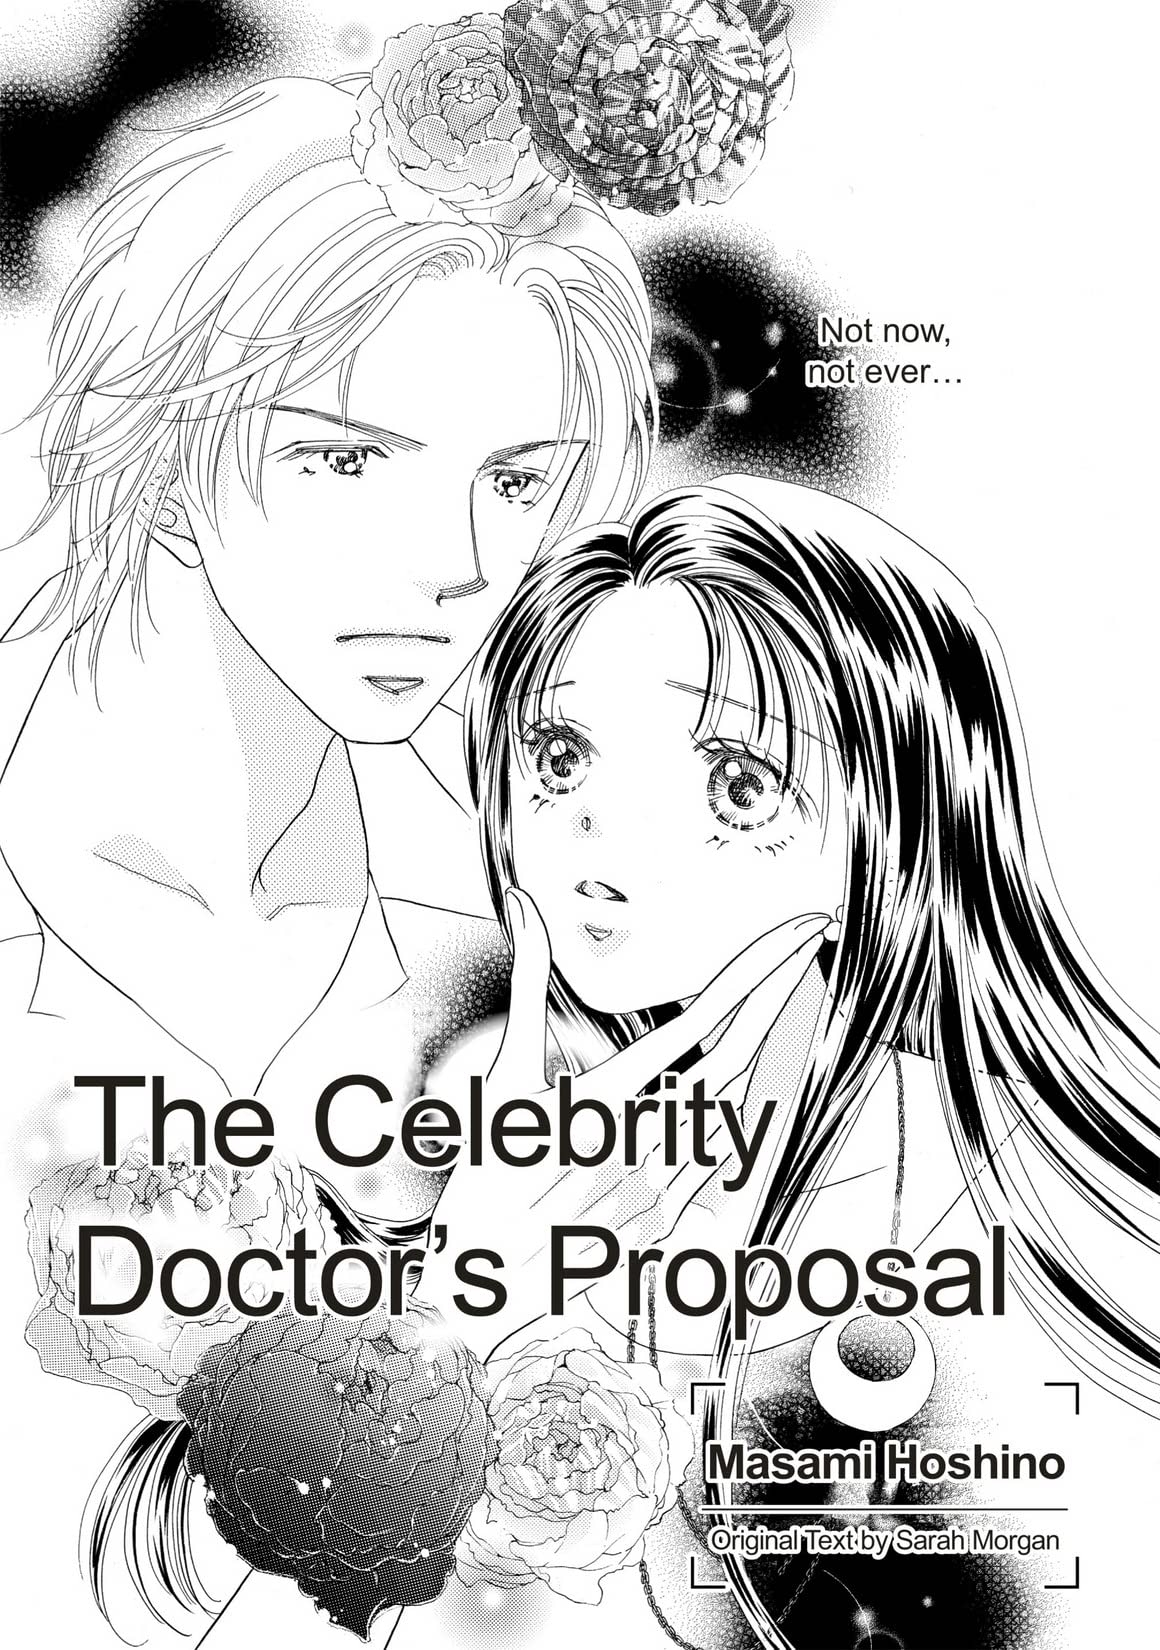 The Celebrity Doctor's Proposal: Preview